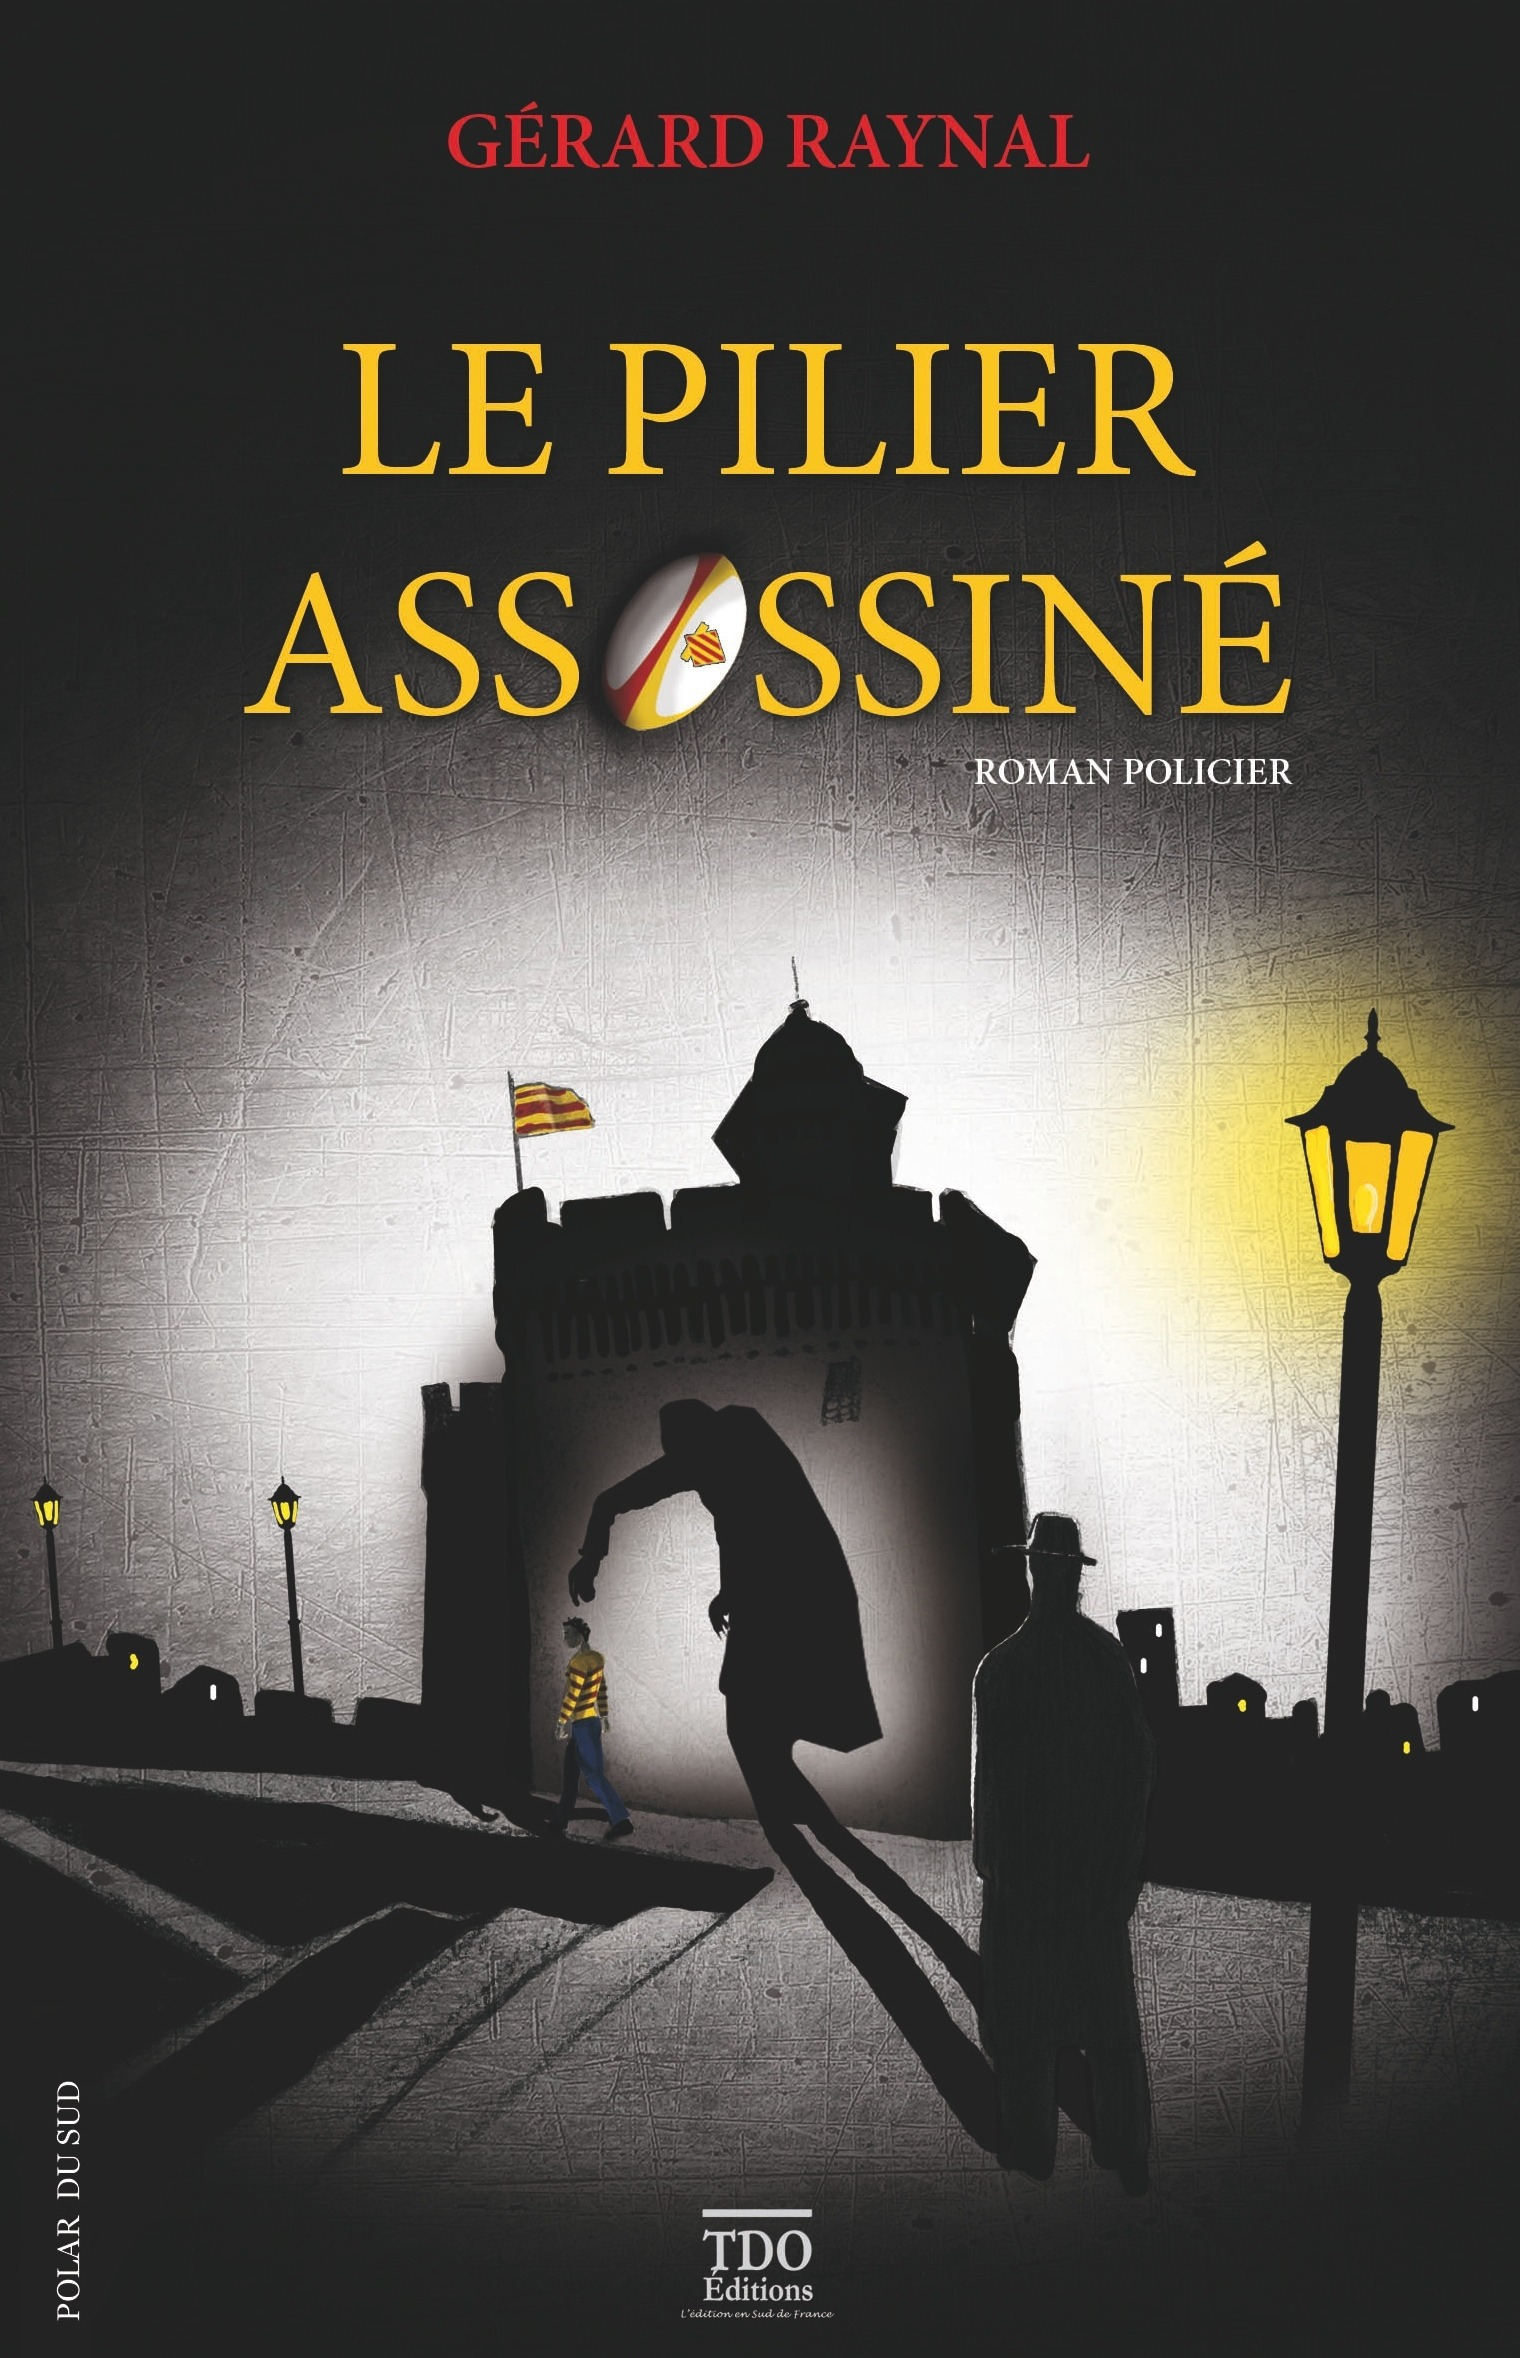 Le pilier assassiné